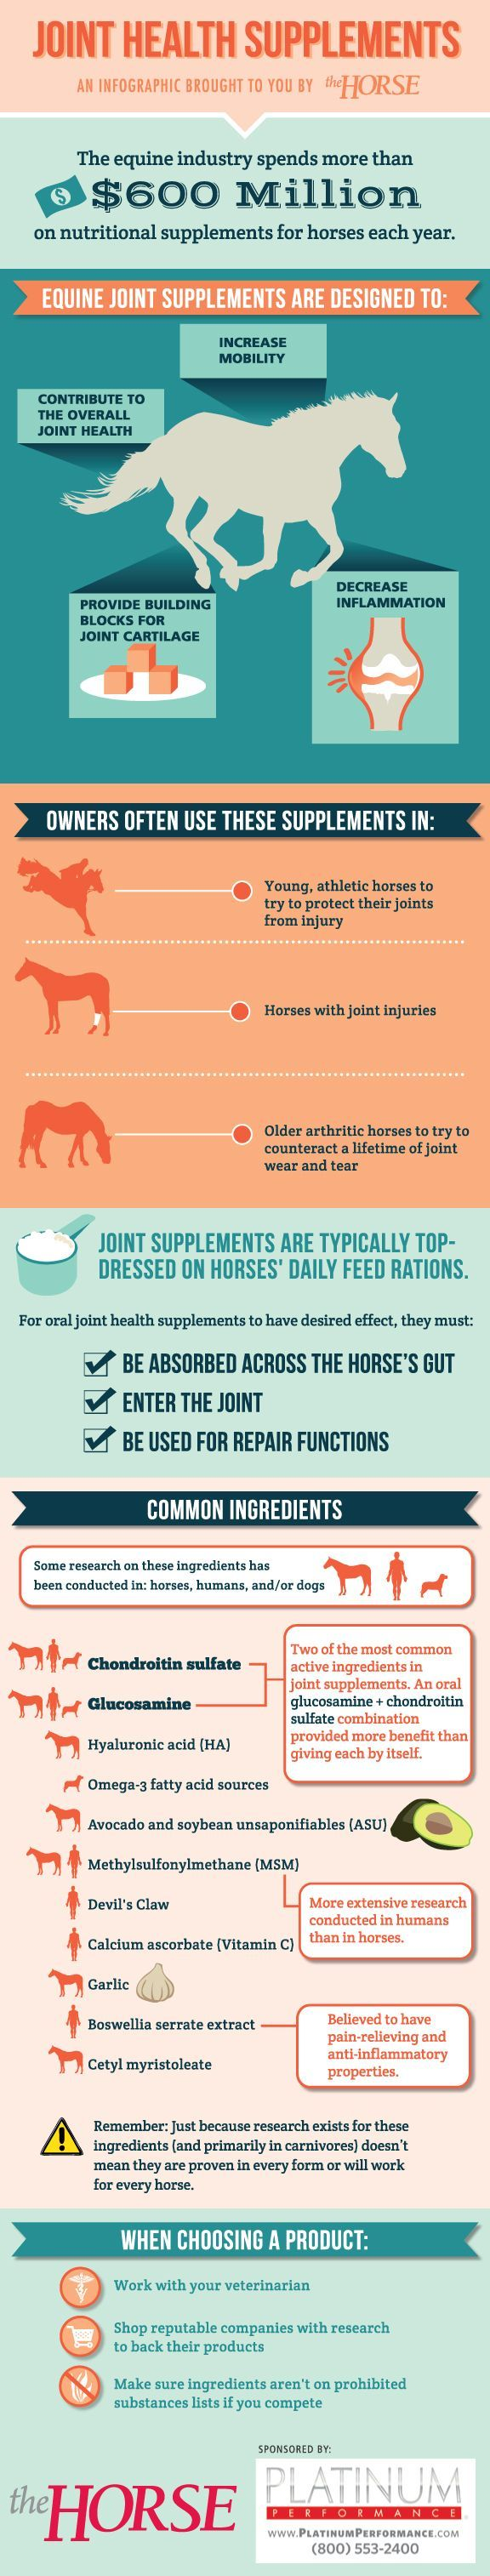 [INFOGRAPHIC] Equine Joint Health Supplements - http://TheHorse.com | Learn about equine joint supplements and what might help your horse in our easy-to-follow visual guide. Brought to you by http://TheHorse.com and @Susan Brown Performance #infographic #horsehealth #supplements #joints